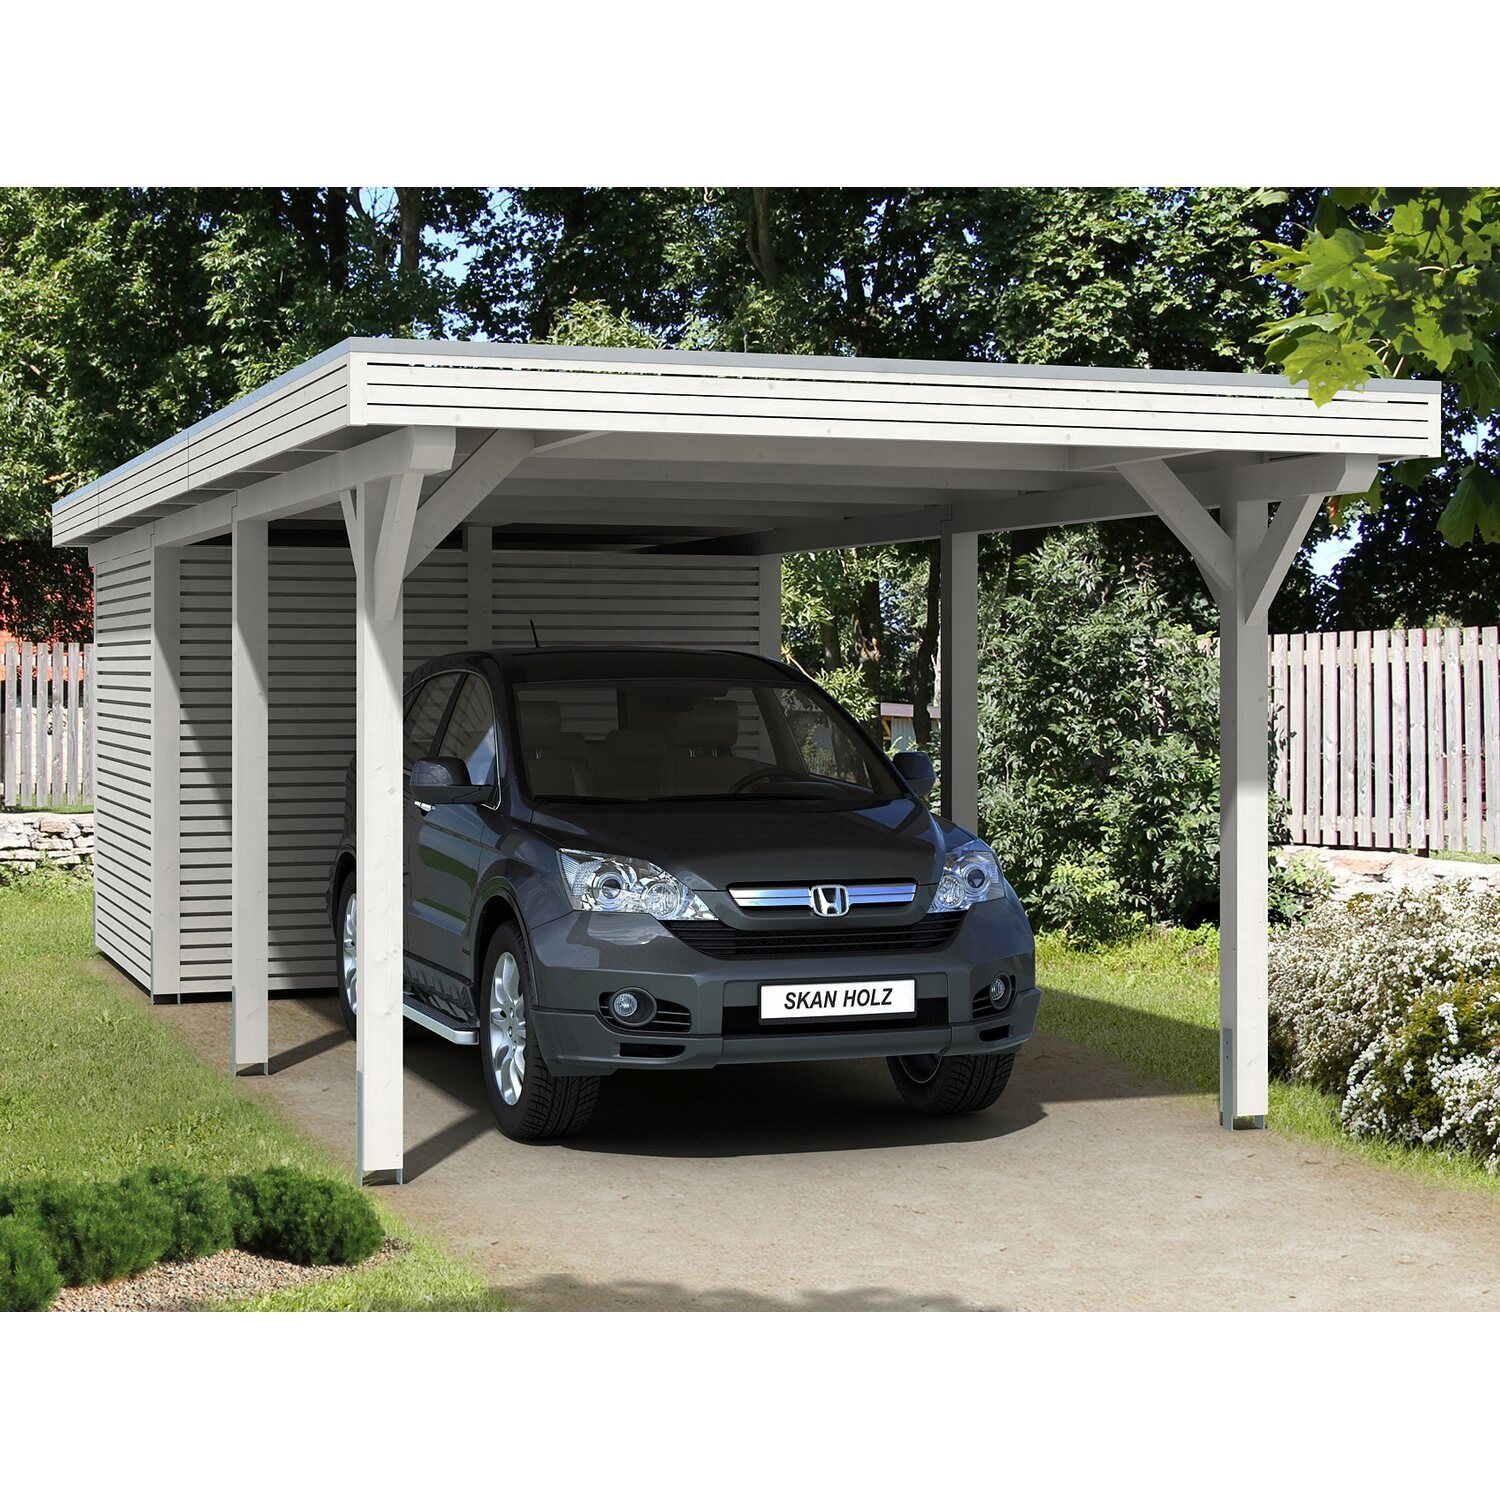 skan holz carport spessart 355 cm x 846 cm mit abstellraum wei kaufen bei obi. Black Bedroom Furniture Sets. Home Design Ideas